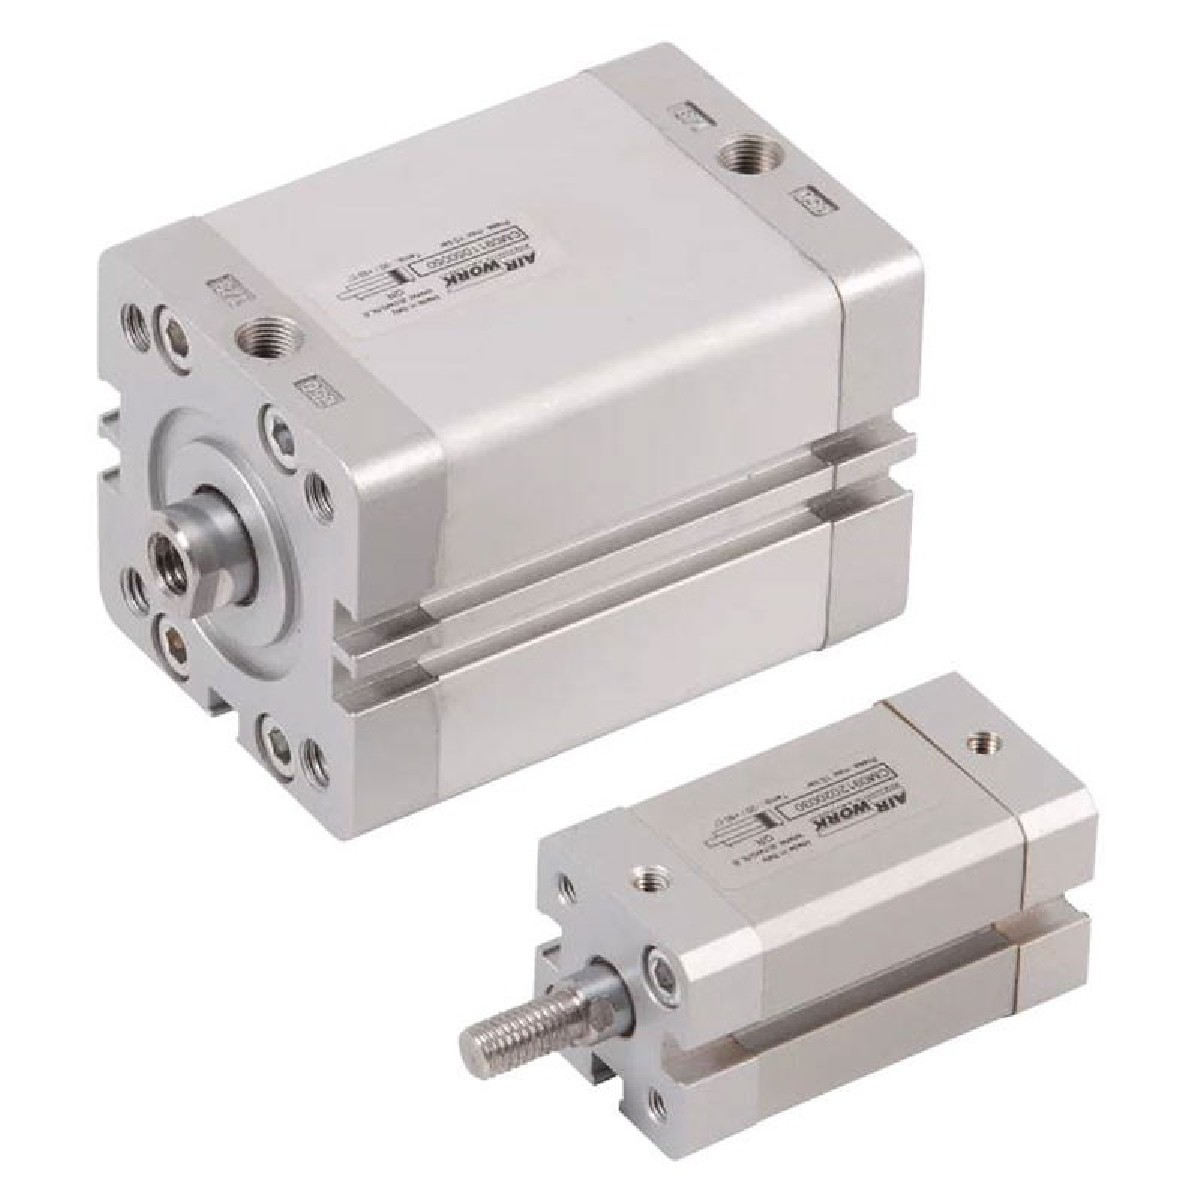 Pneumatic Cylinders and Accessories - CM Compact ISO 21287 Cylinders